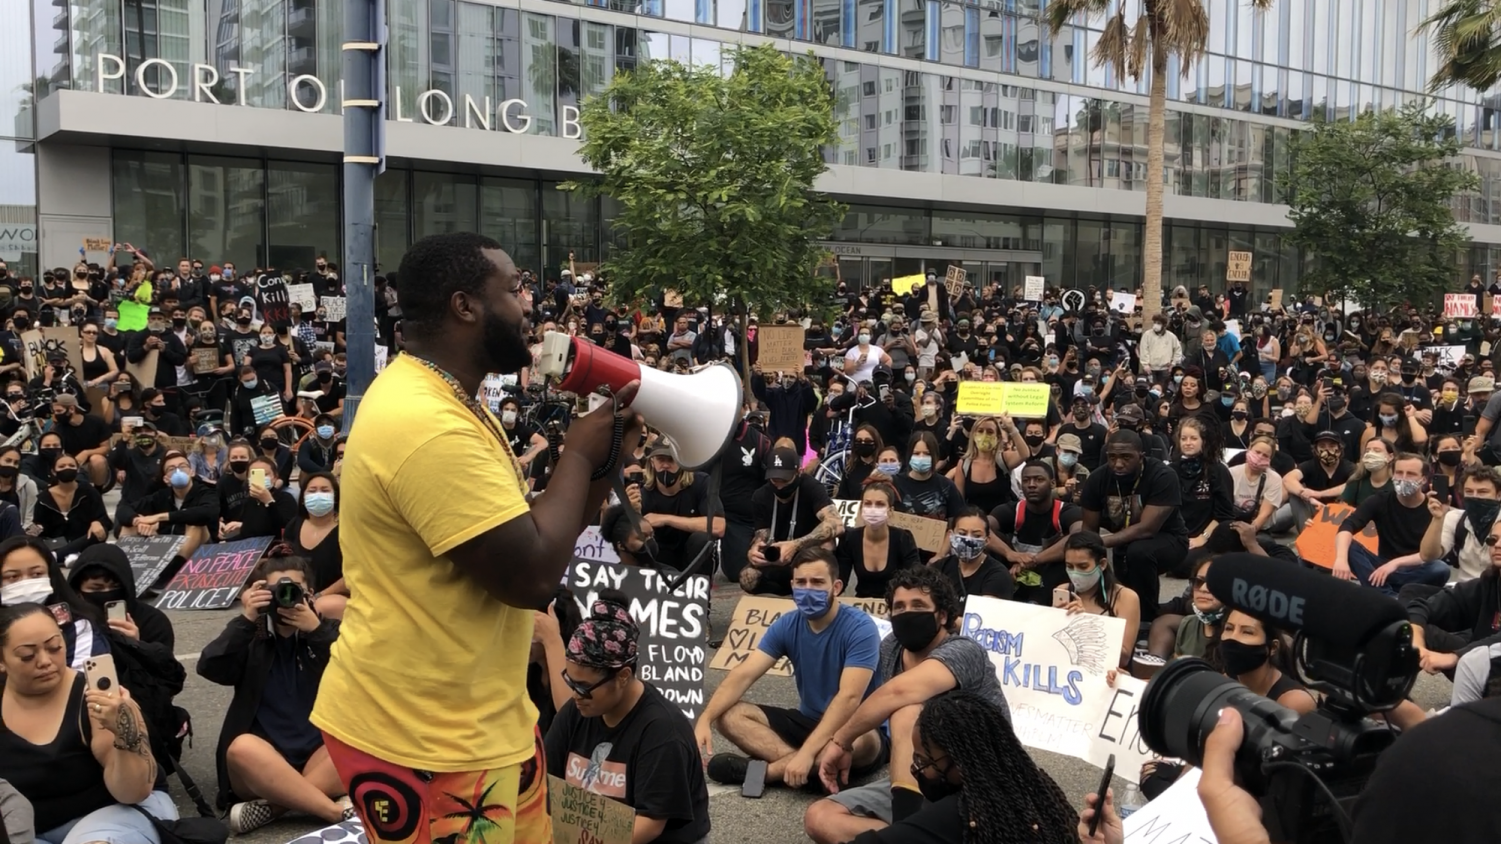 A Black Lives Matter protest in from of the Long Beach City Hall in Downtown LB. Hundreds gathered and listened to guest speakers in support of the protests. Image from June 4, 2020. Photo credit: Daniel Suarez Jr.